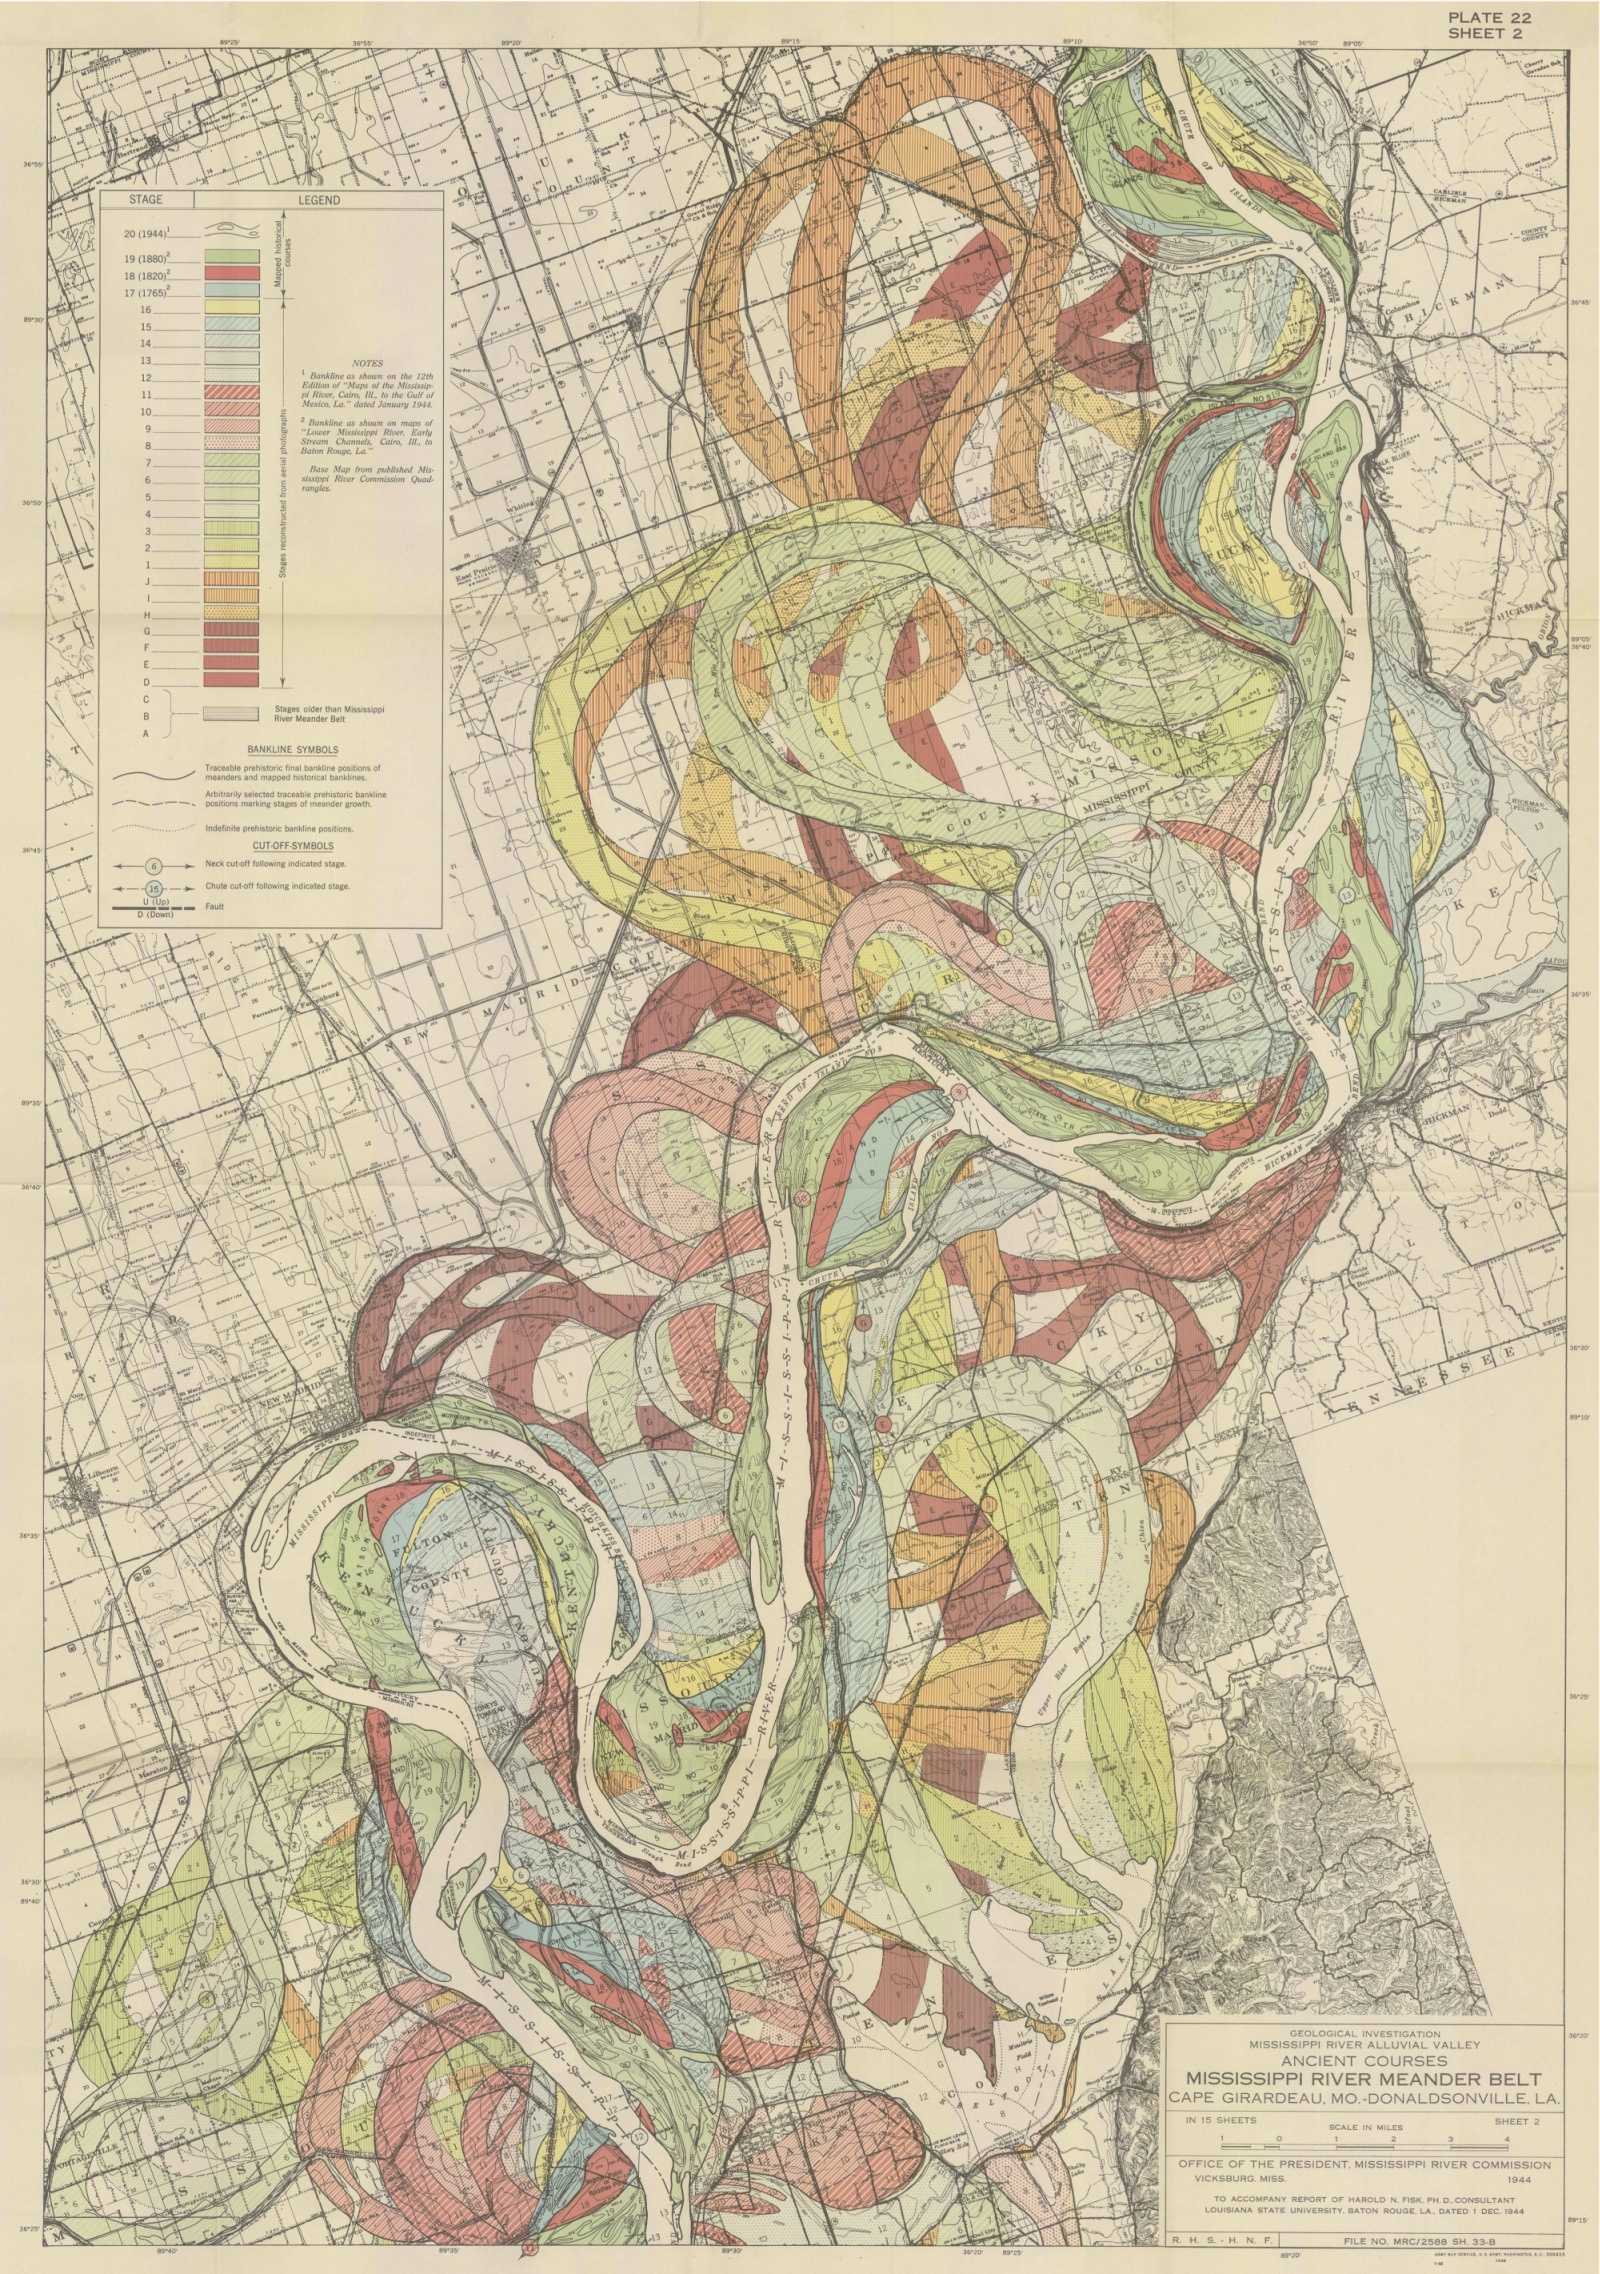 how-the-paths-of-the-mississippi-changed-in-the-past-5